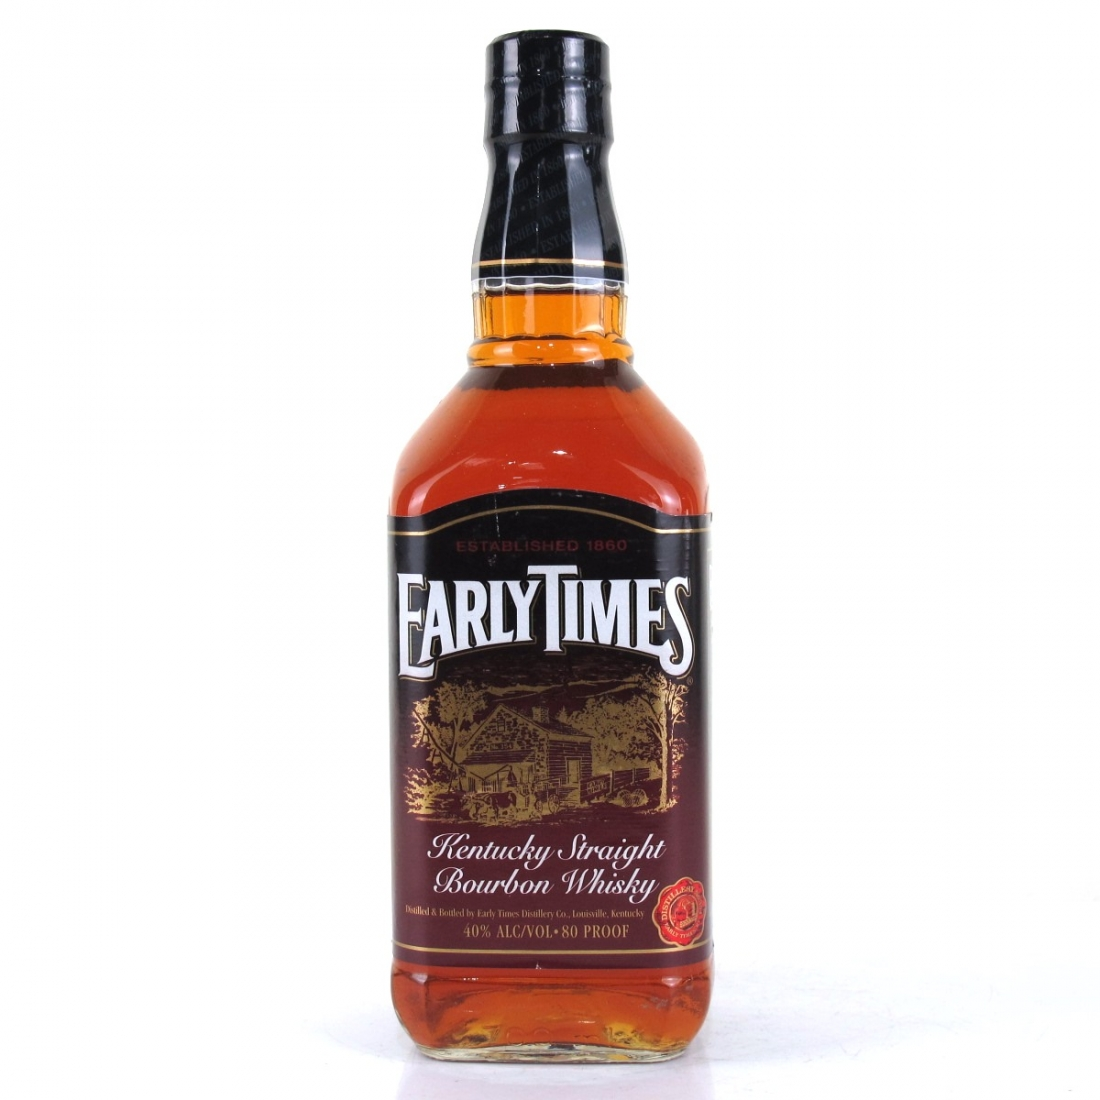 Early Times Kentucky Straight Bourbon